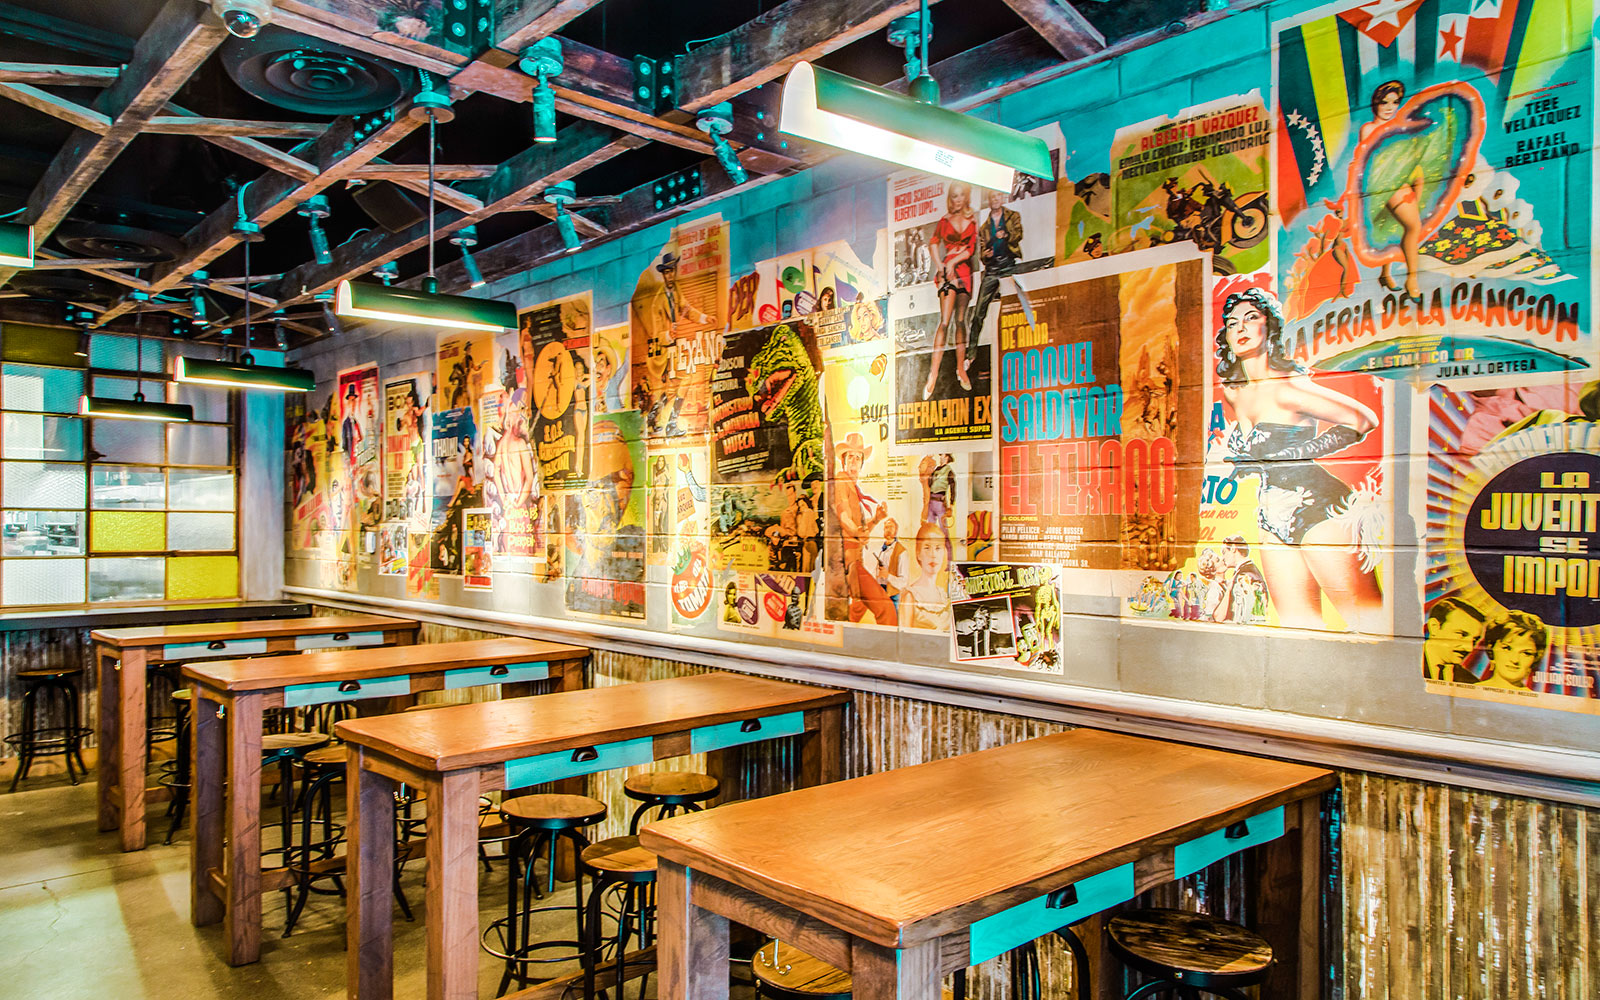 New York's Mexican Moment: 9 Restaurant Debuts that Will Make You Forget California and Texas: El Vez Burrito